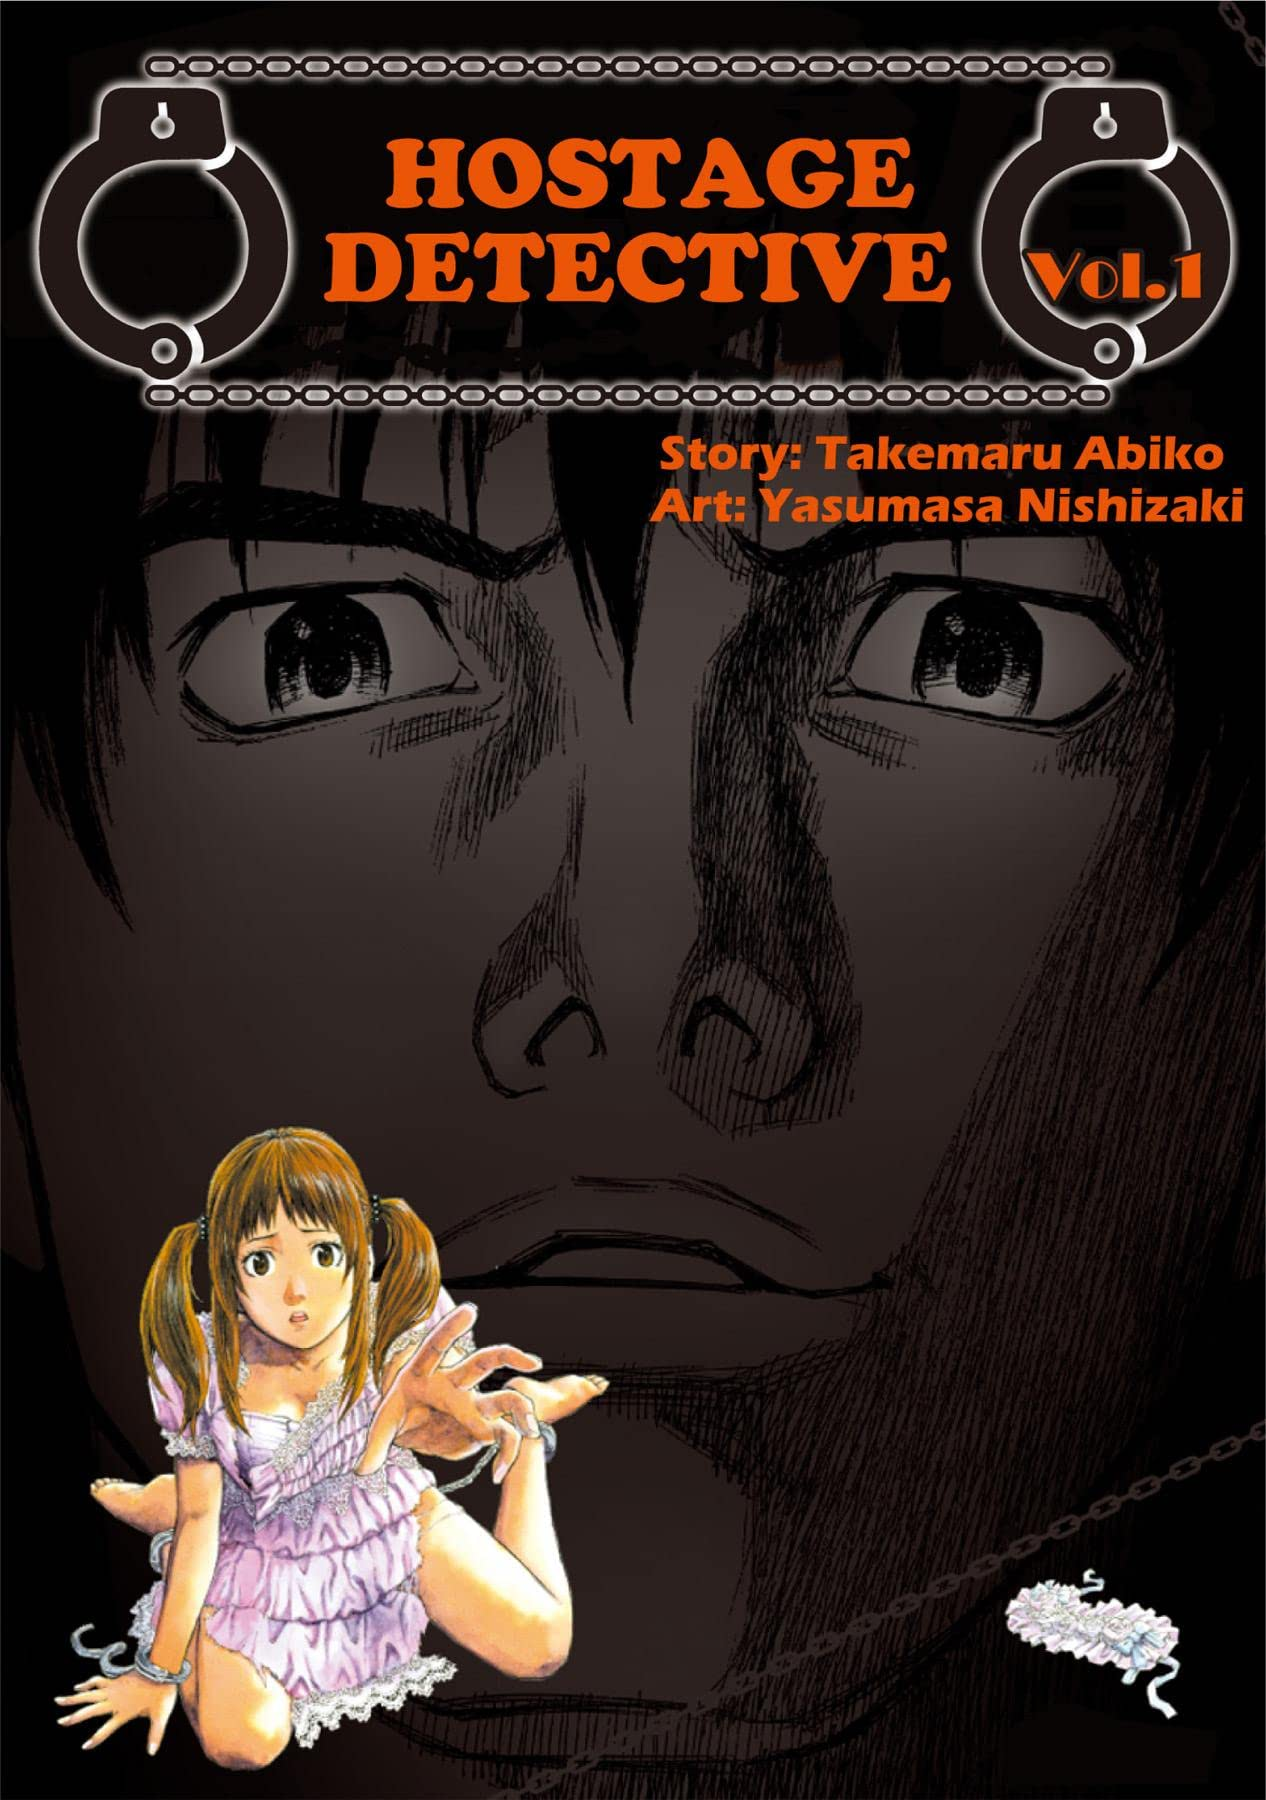 HOSTAGE DETECTIVE Vol. 1